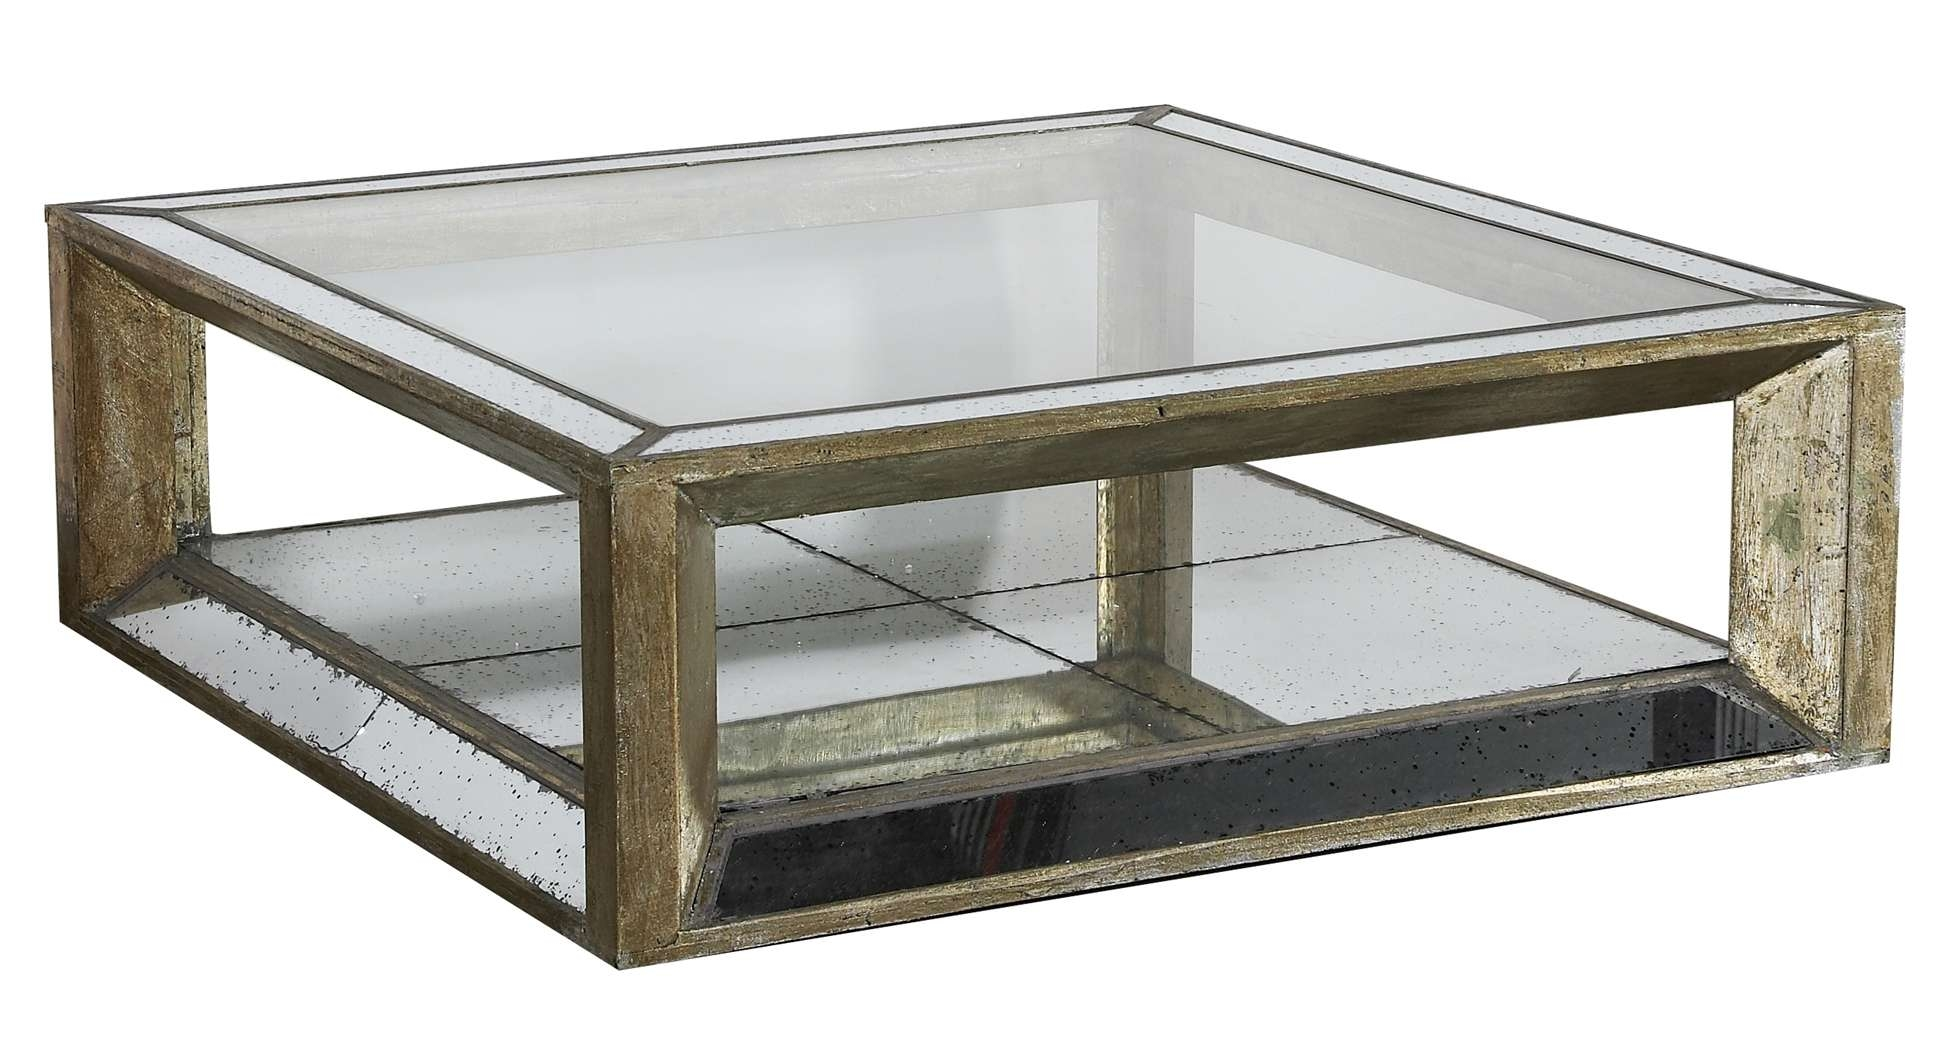 Old Style Square Mirrored Coffee Table With Reclaimed Wooden Frame Intended For Latest Round Mirrored Coffee Tables (View 19 of 20)